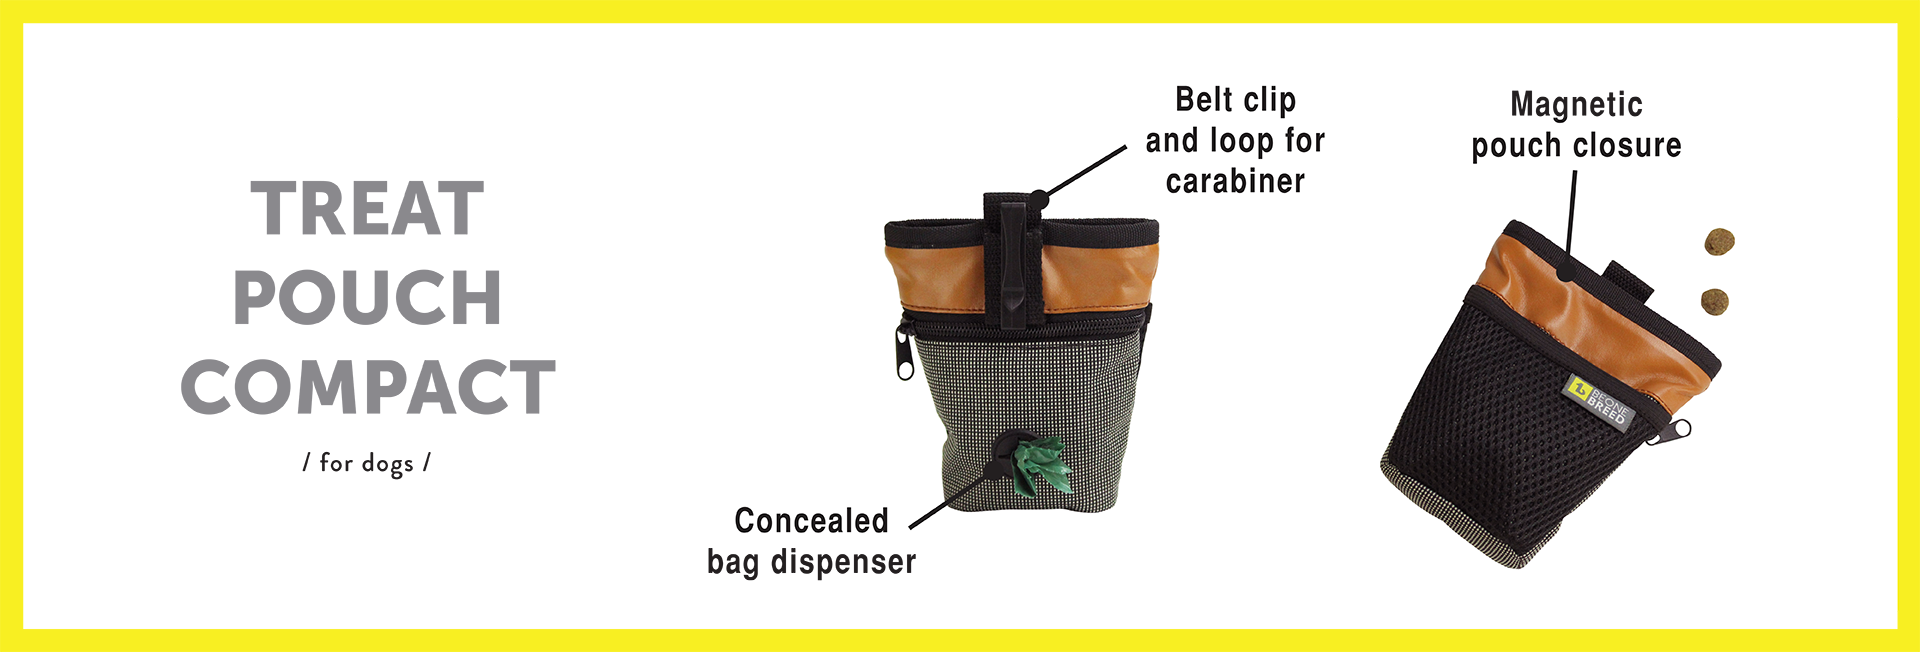 bag-dispenser-treat-pouch-compact-for-dogs-english